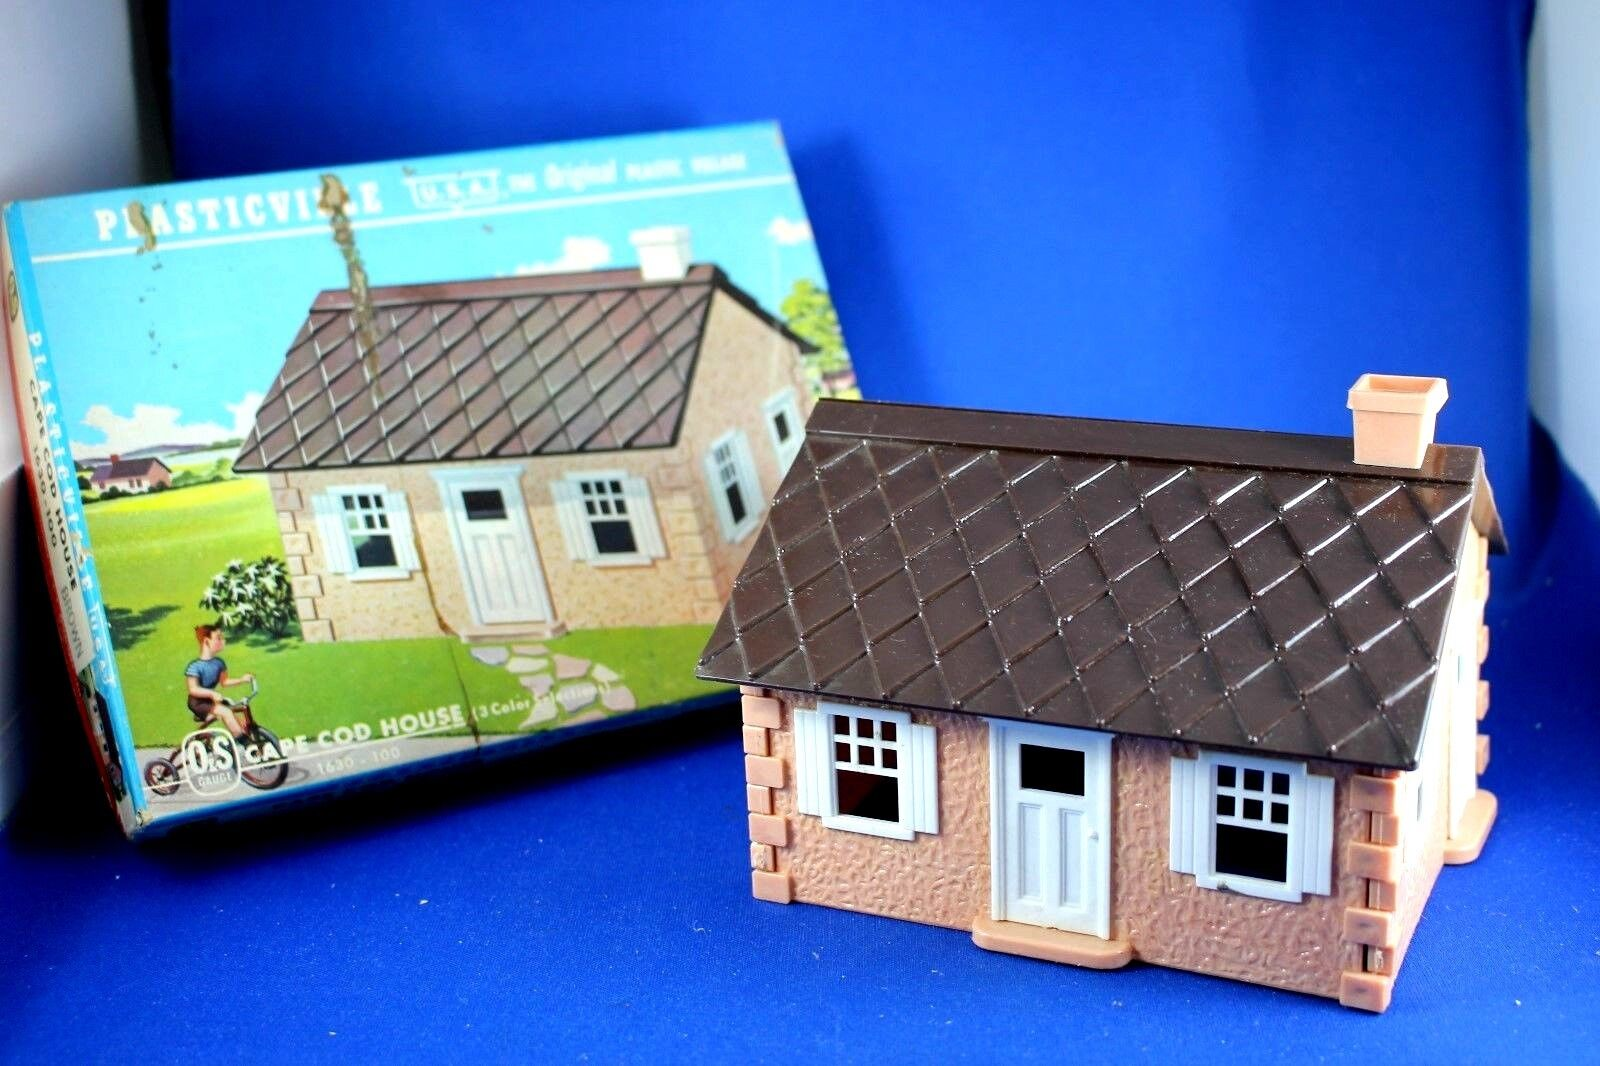 Plasticville - O-O27 -  1630 Original Cape Cod - Peach & marrone Roof bianca Trim